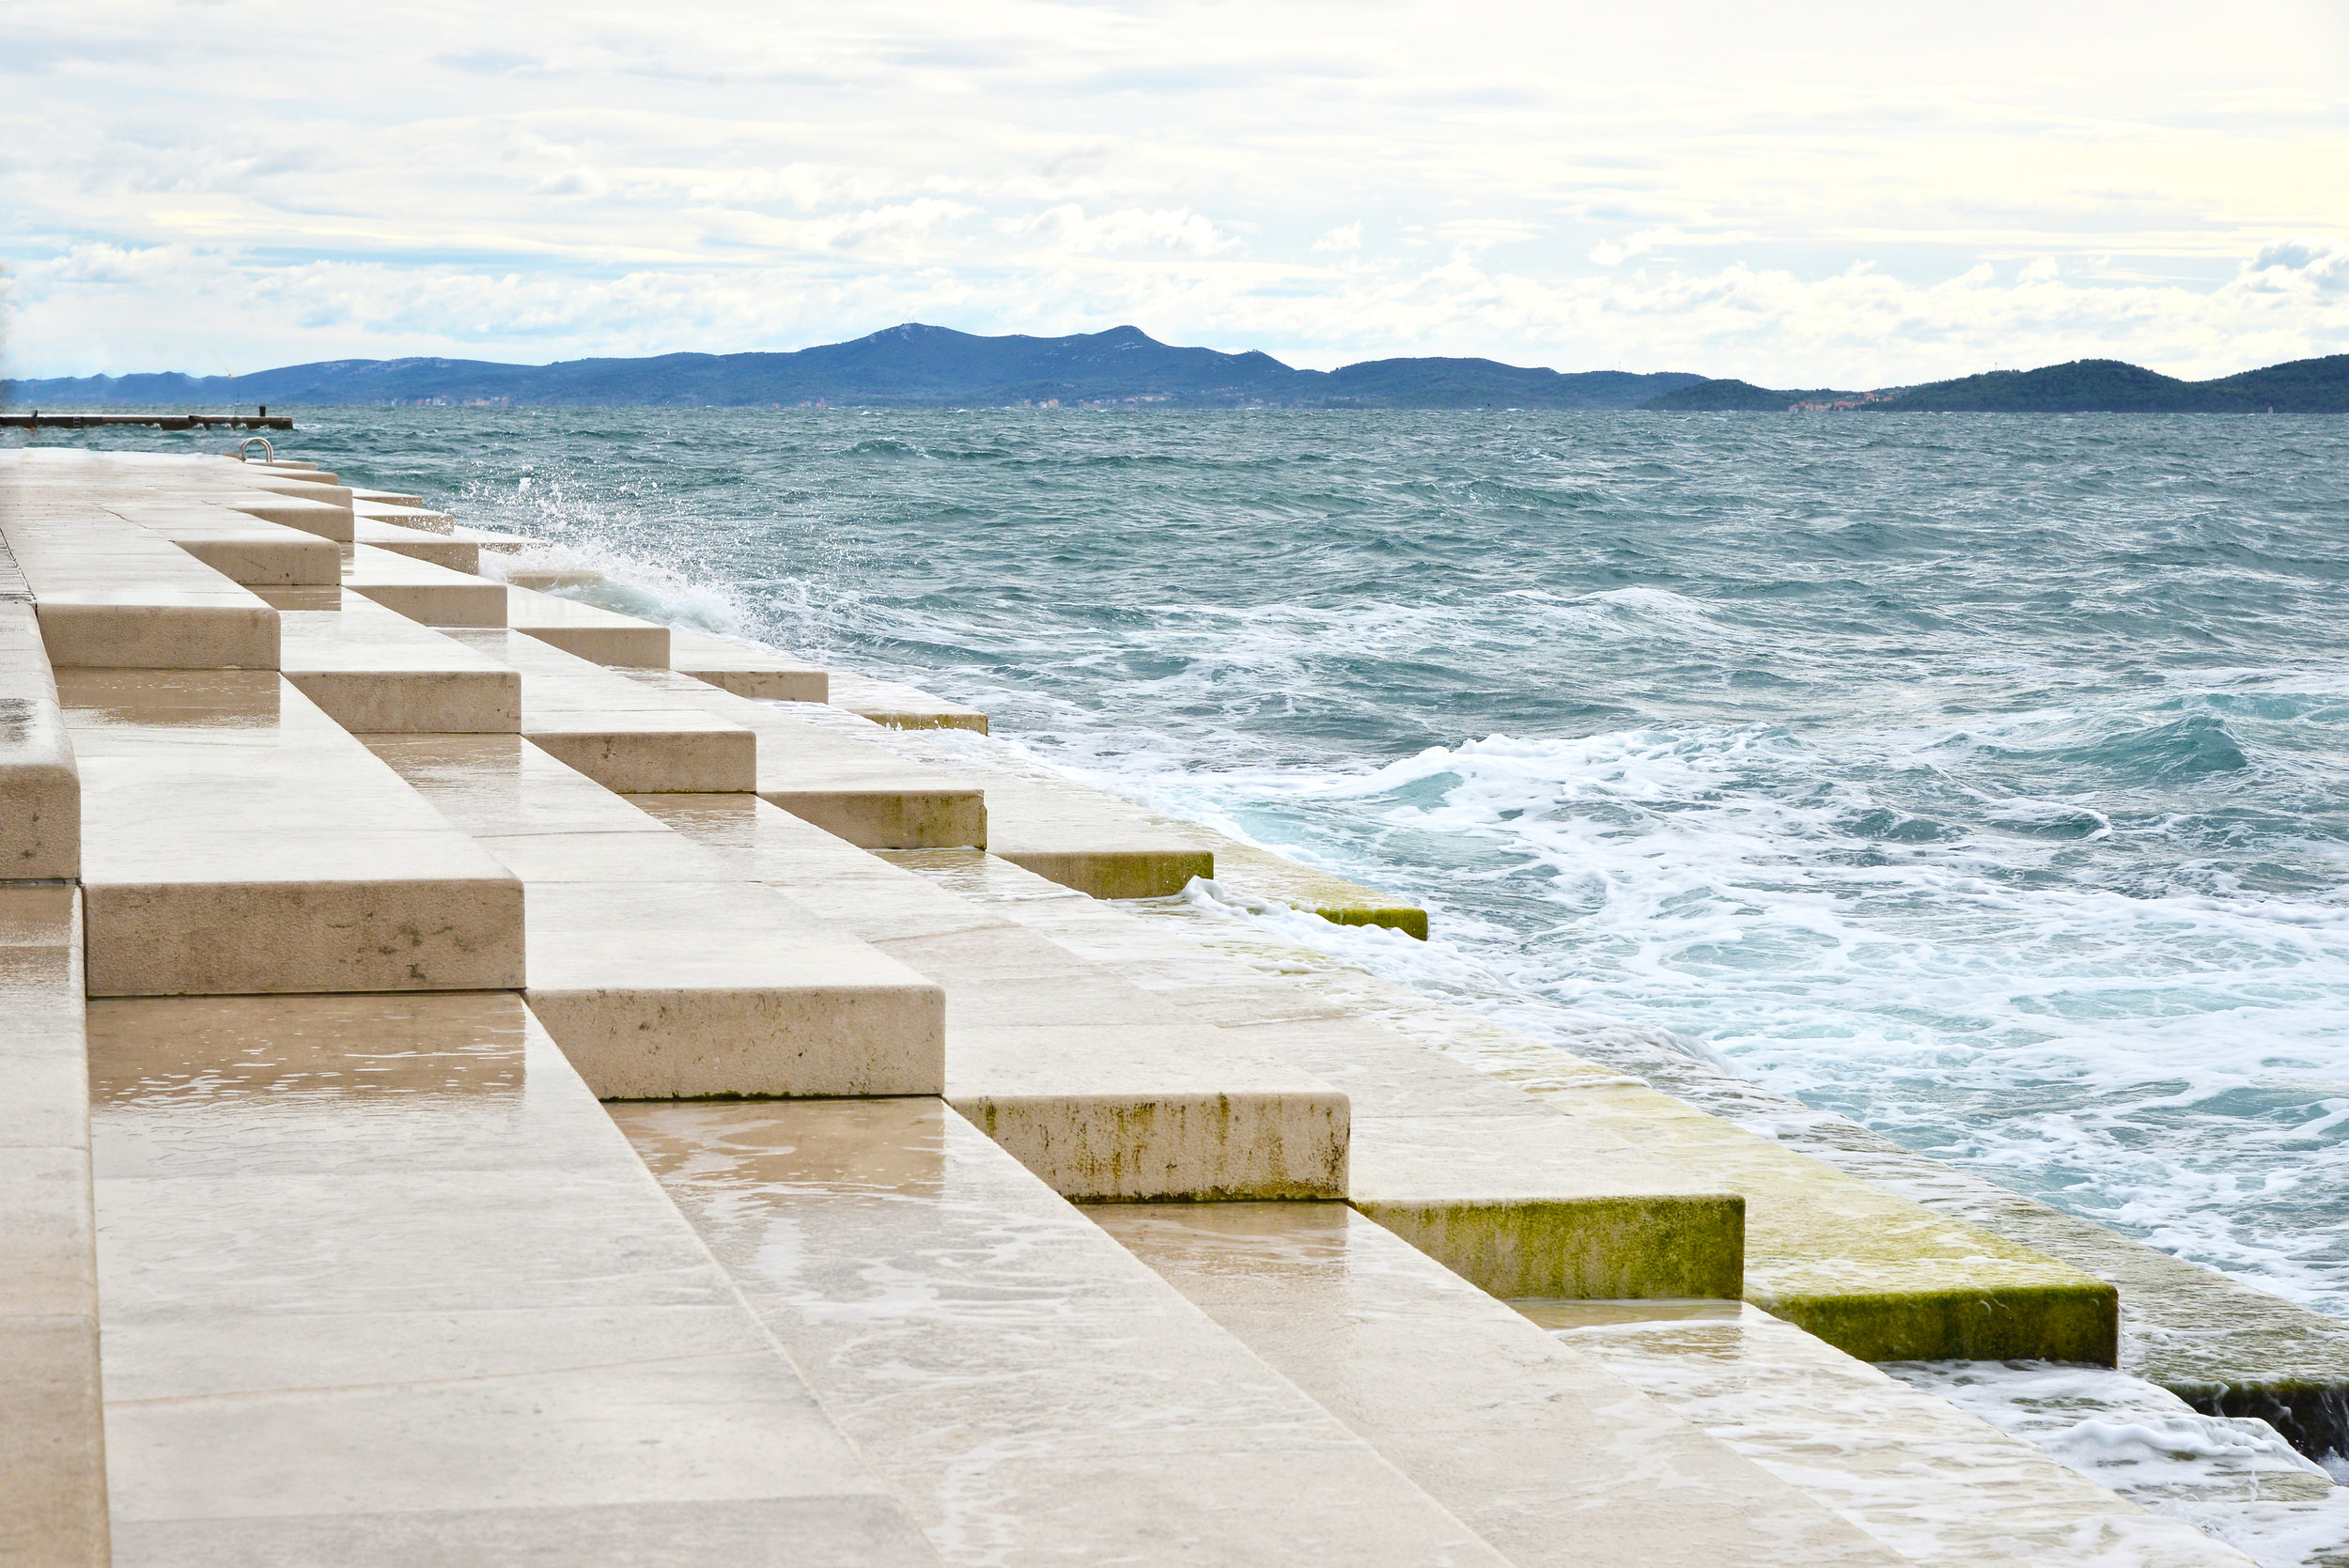 The Sea Sings track#9 - Perched along 230ft.of coastline in Zadar, Croatia, lays an architectural wonder: a series of marble steps that join the land into the sea. These steps conceal a labyrinth of tubes that produce harmonic tones as the sea water rushes in. Mesmerized by the haunting music the wind and tides were composing, I sat down at my piano, turned on the recorder, and improvised an accompaniment. This was done in one take, and I have only ever played this song once. Special thanks to Tom Eaton for mixing The Sea Organ with my song, THE SEA SINGS.